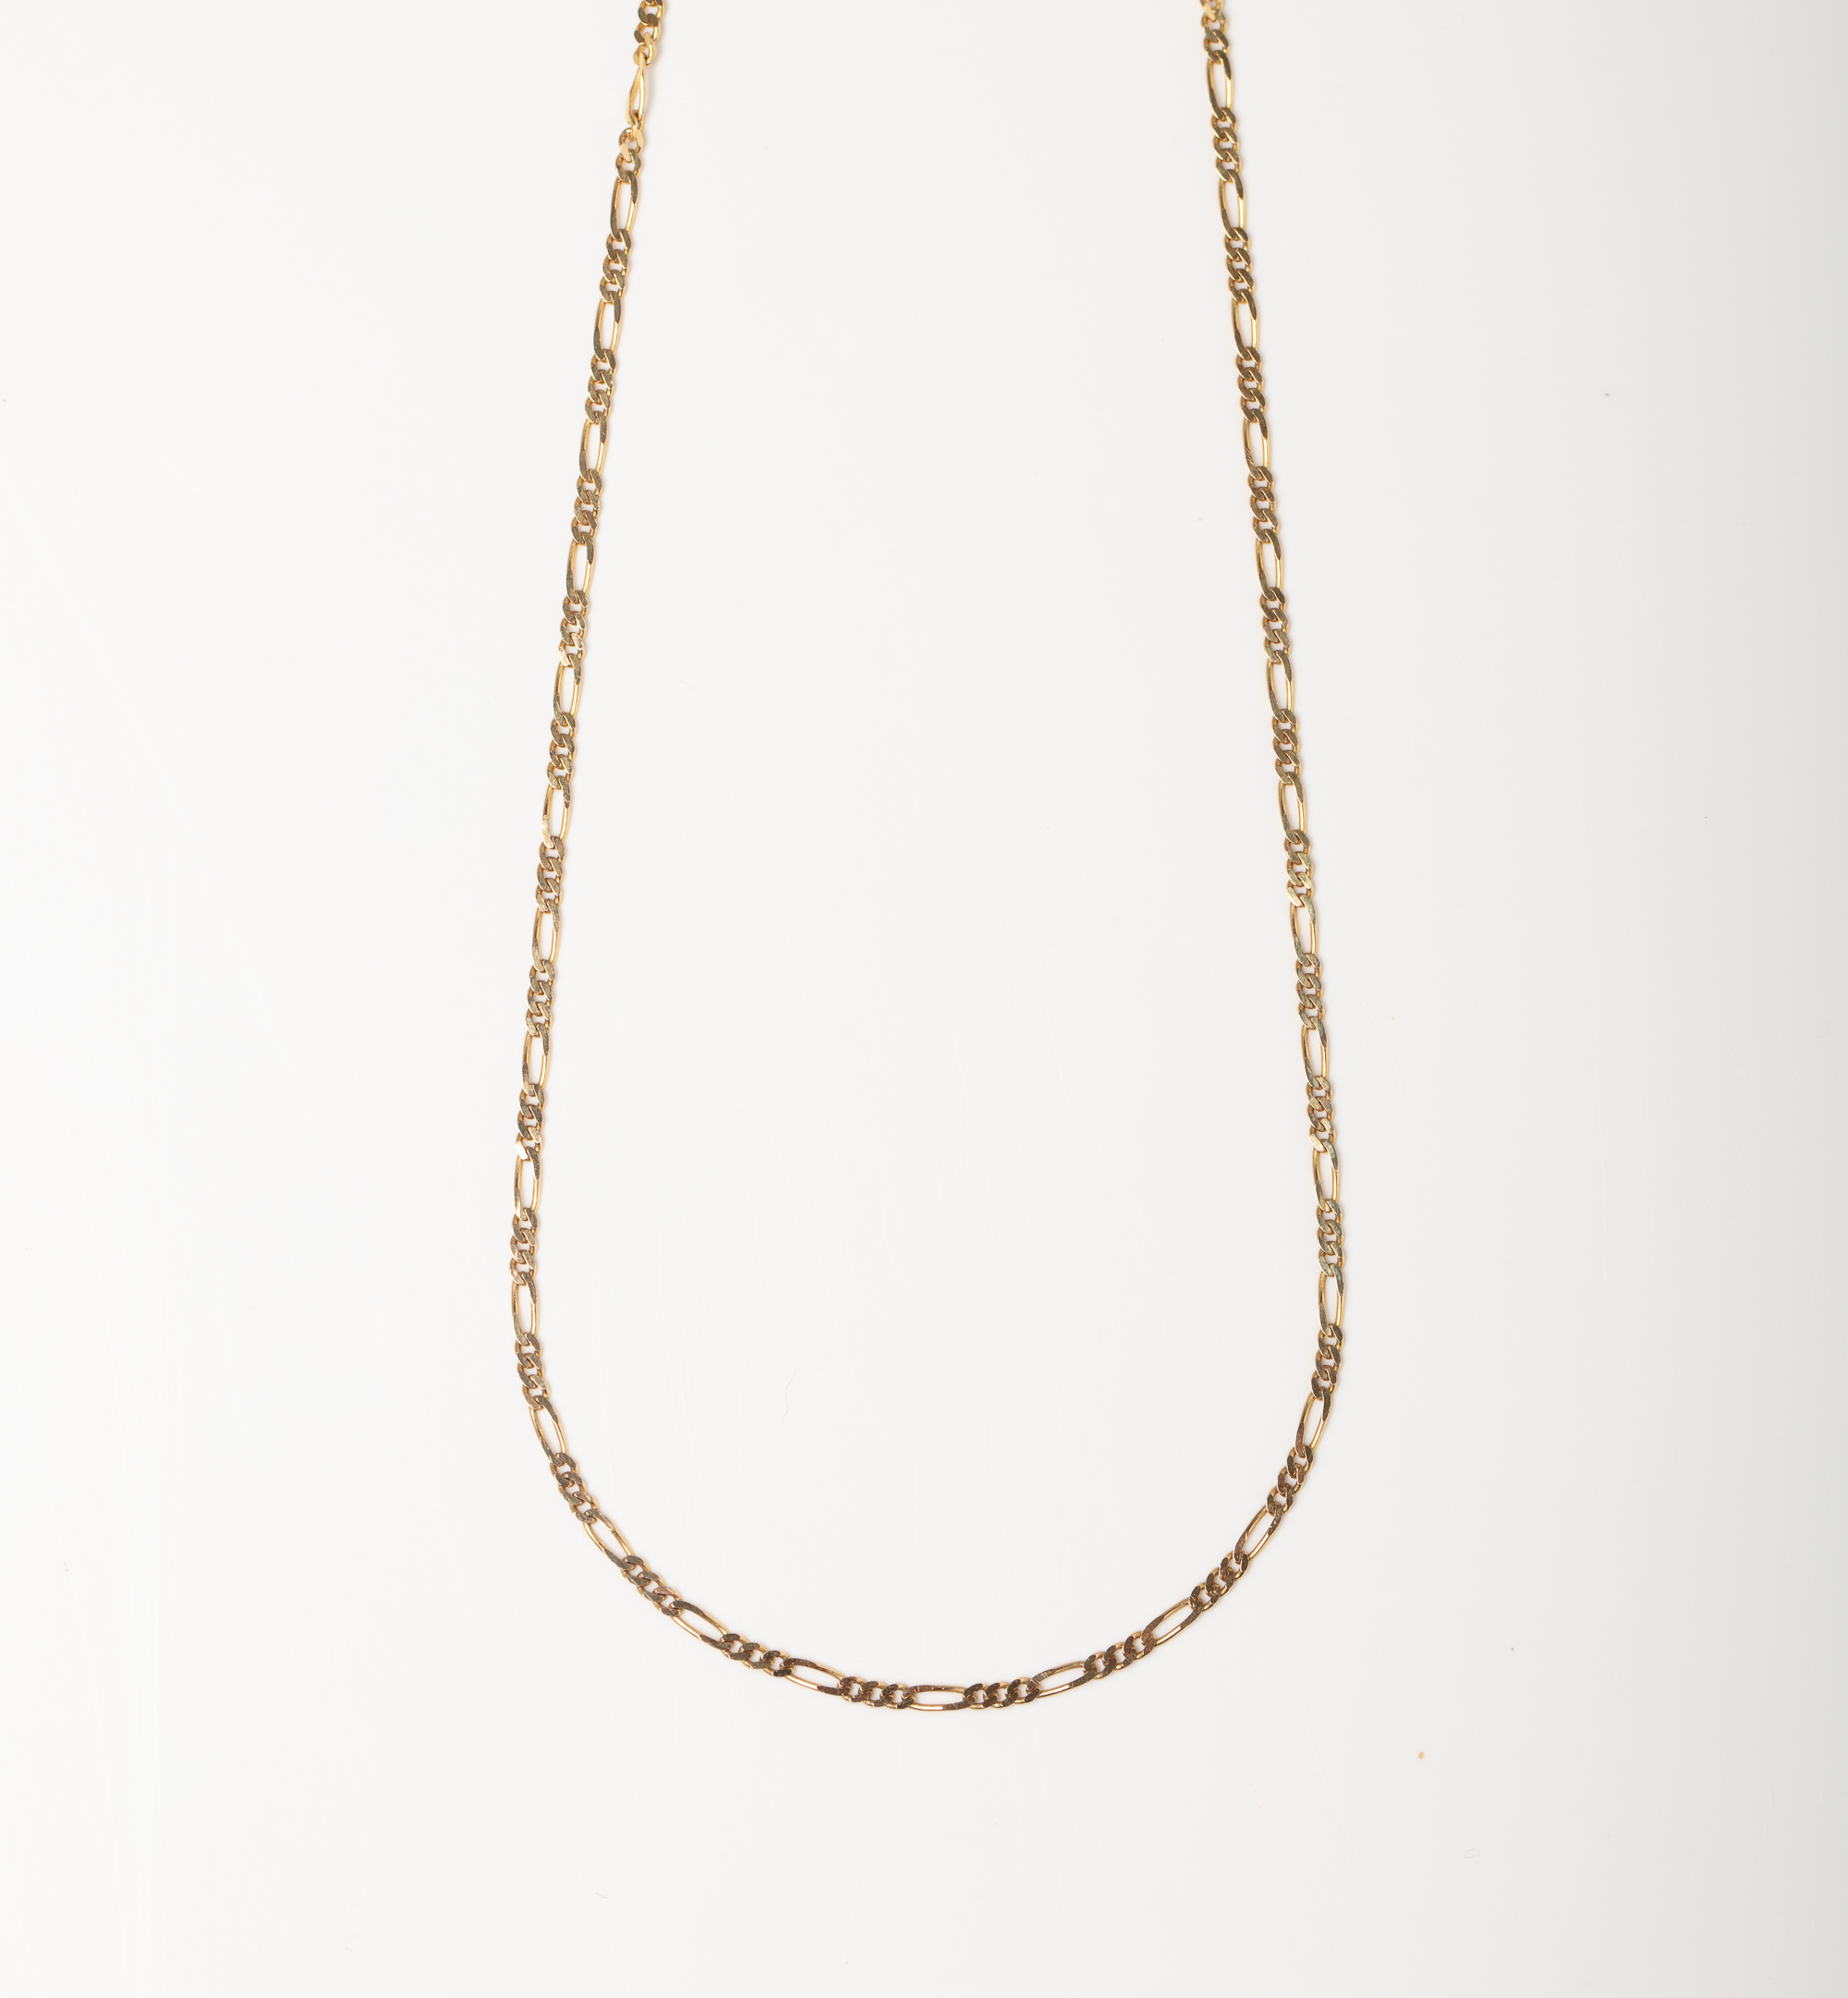 A 9CT GOLD FIGARO CHAIN